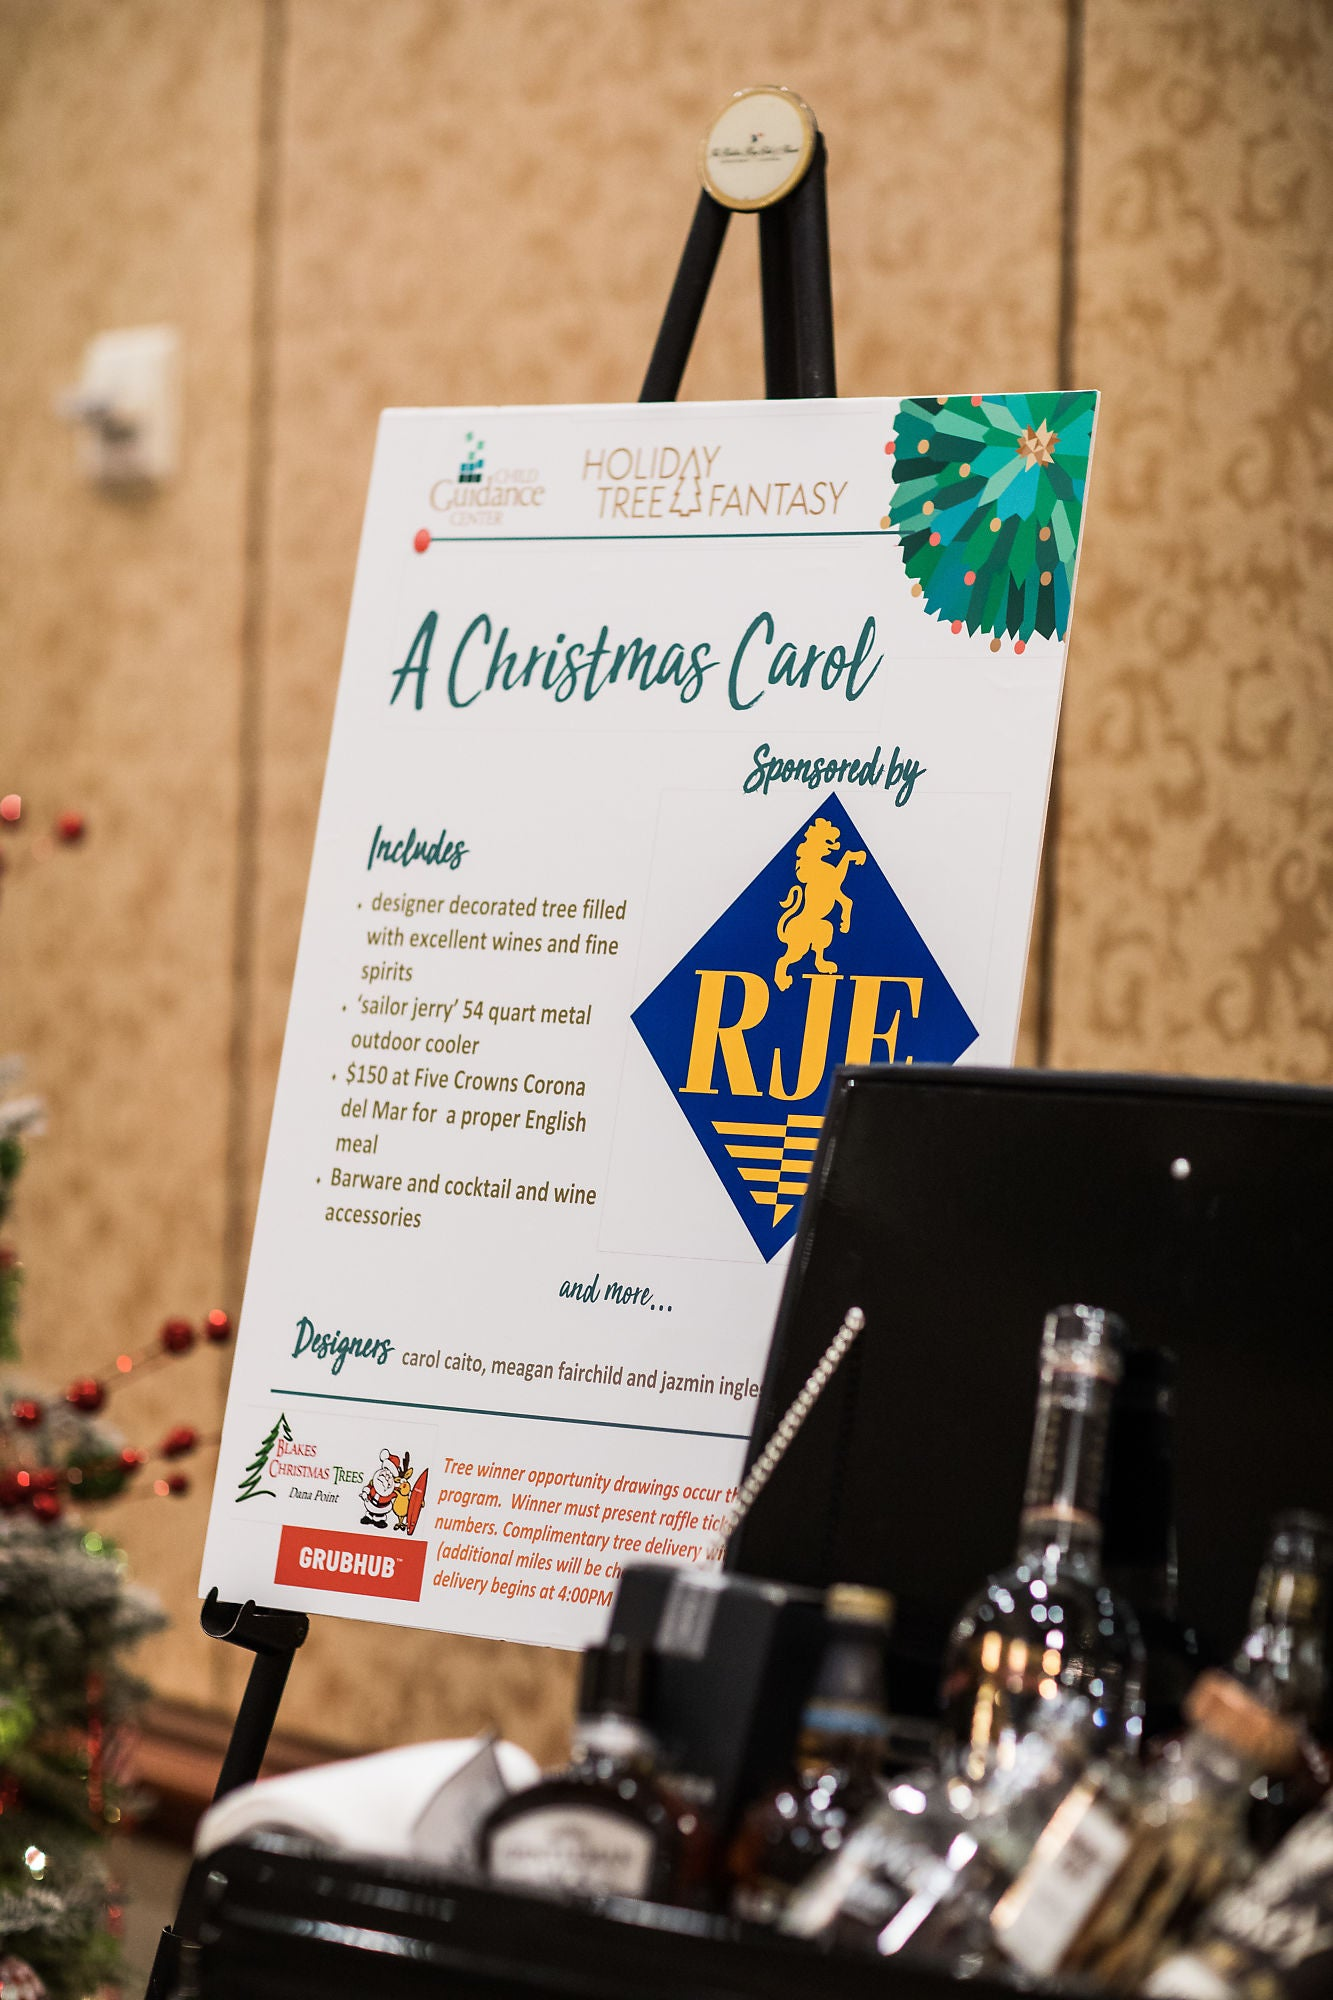 An information board titled as The Christmas Carol, explaining items included by the sponsor